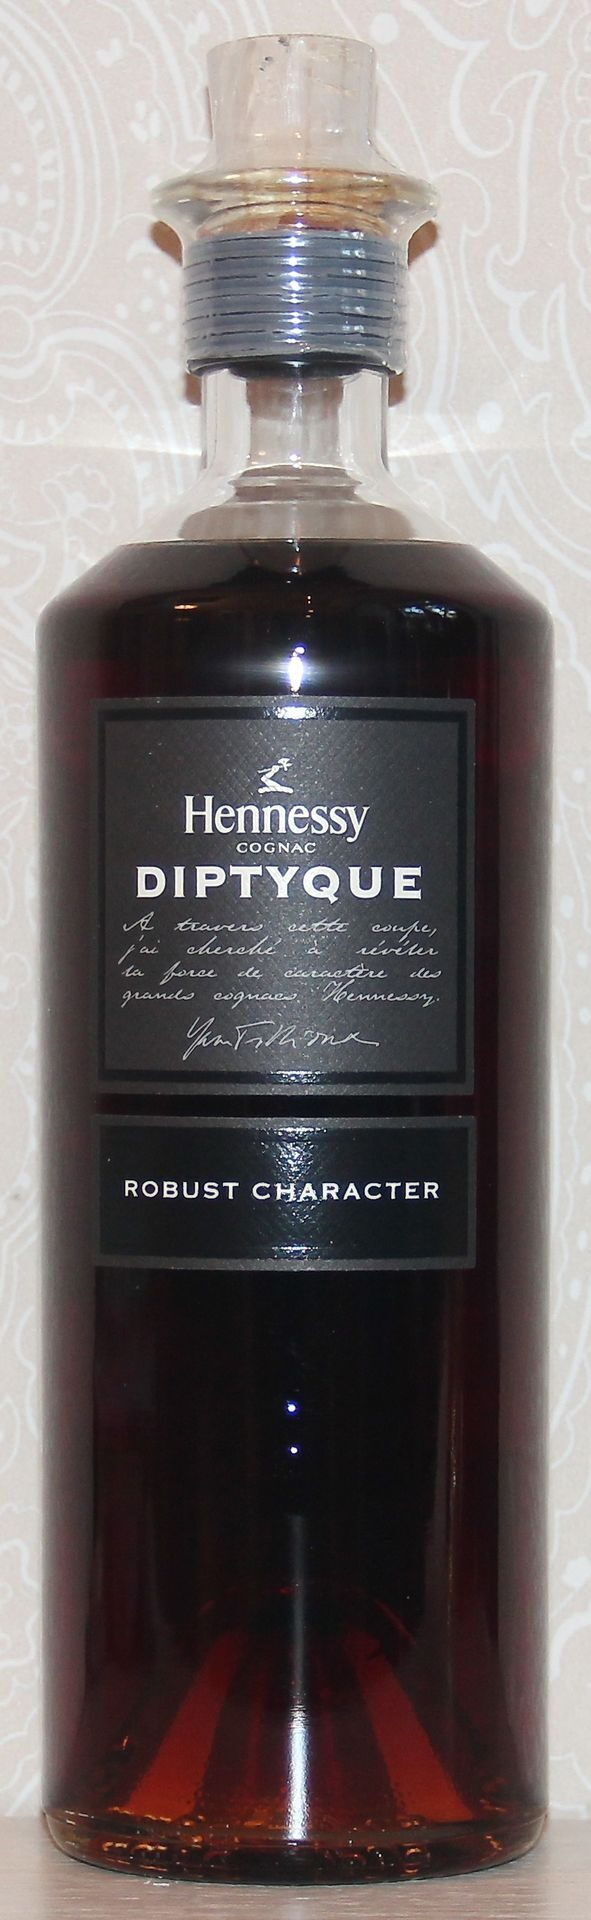 Hennessy Diptyque Robust Character 0,5L 2008